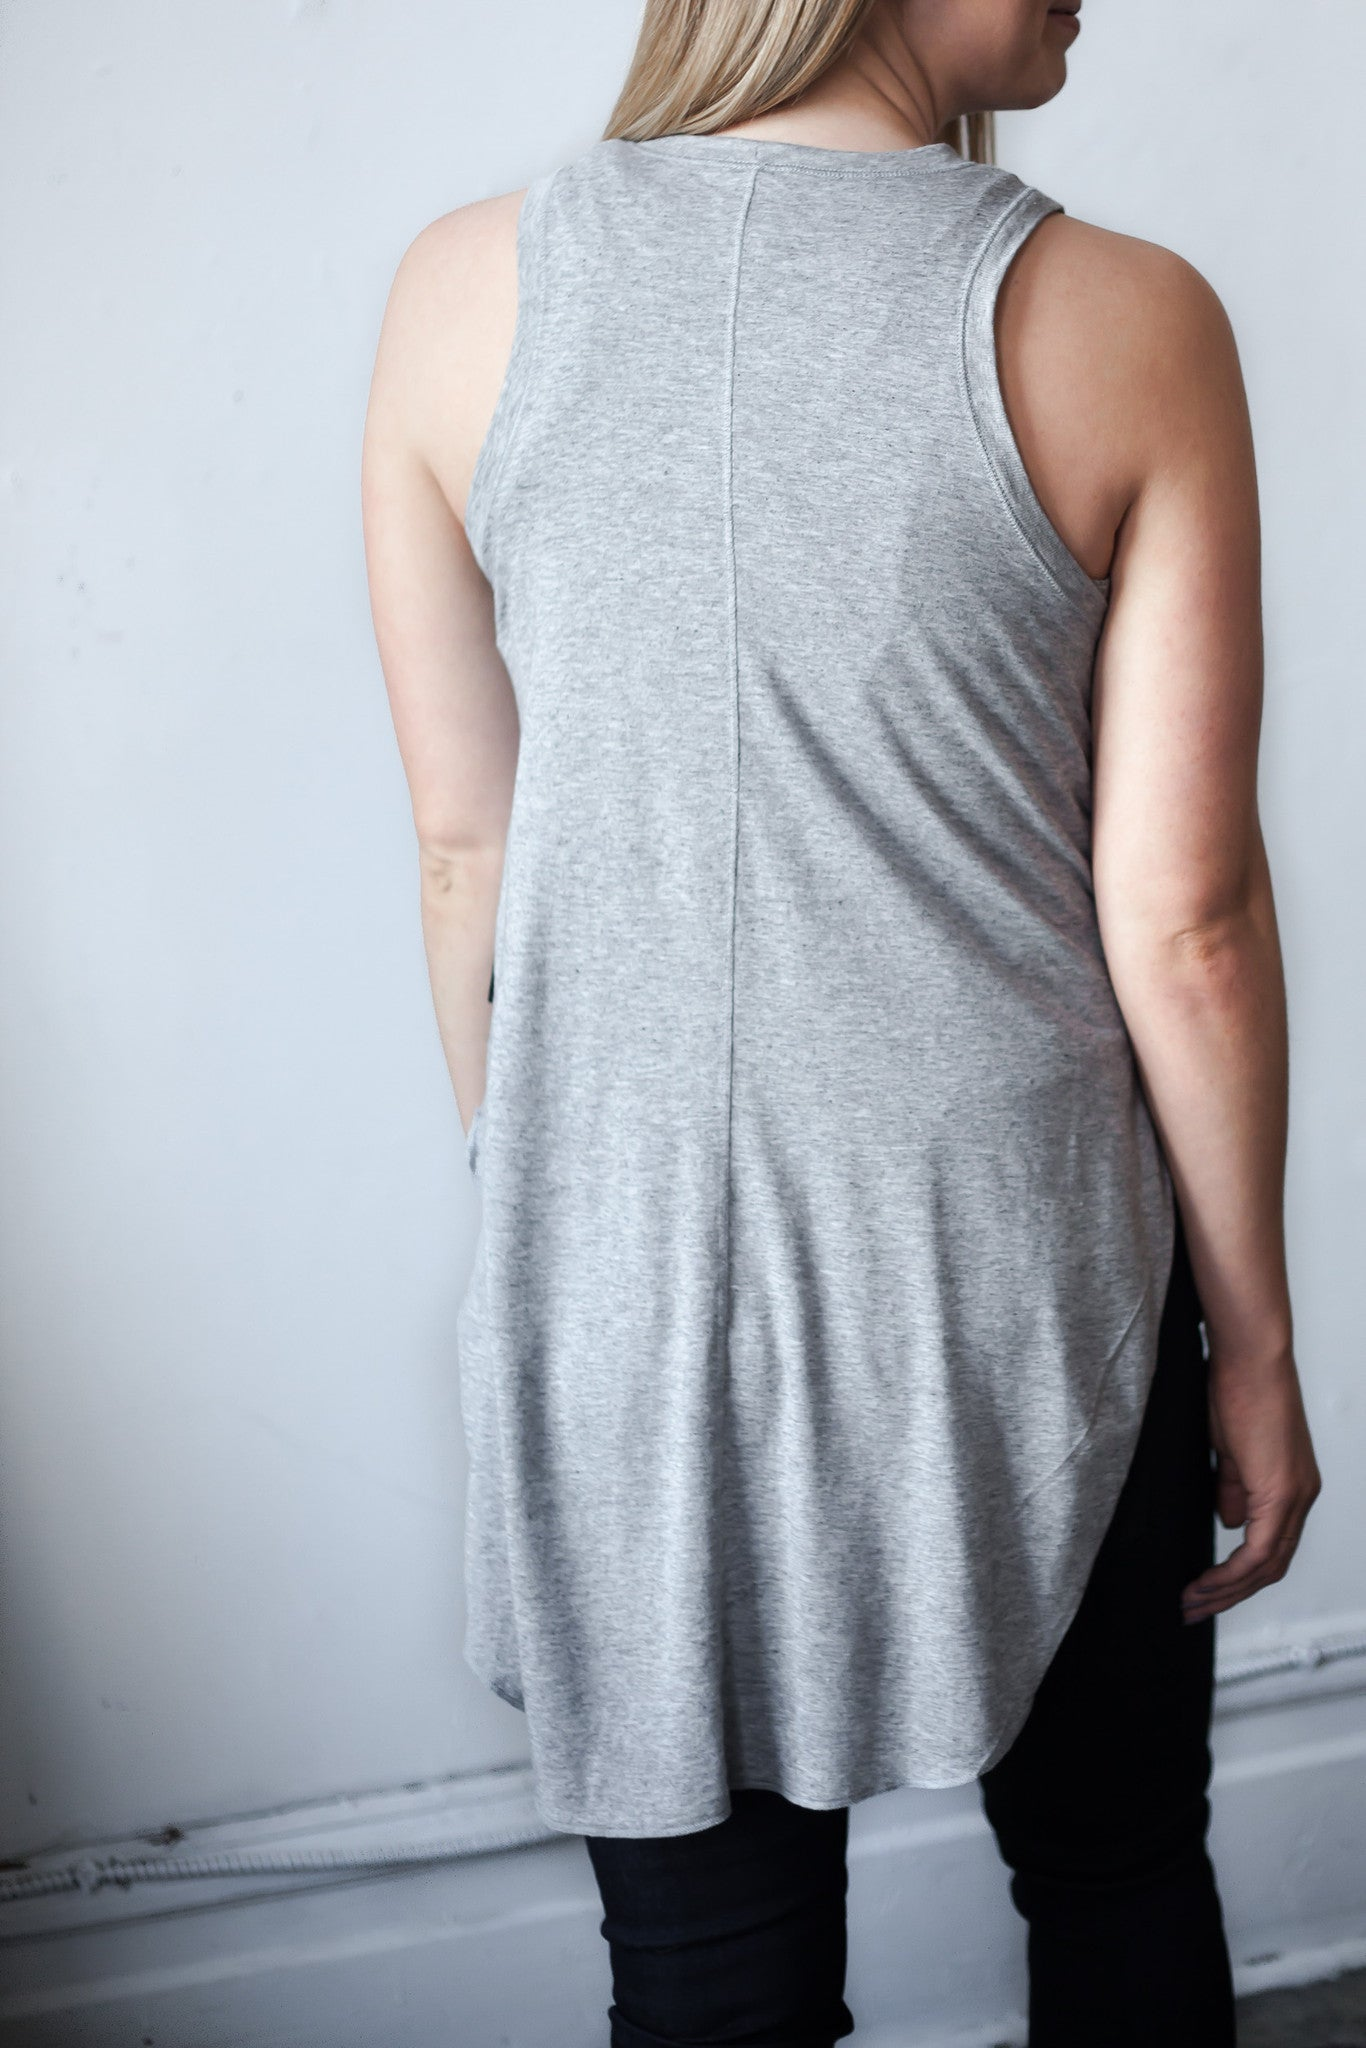 GREY BETTY TANK - Fallow Ltd.